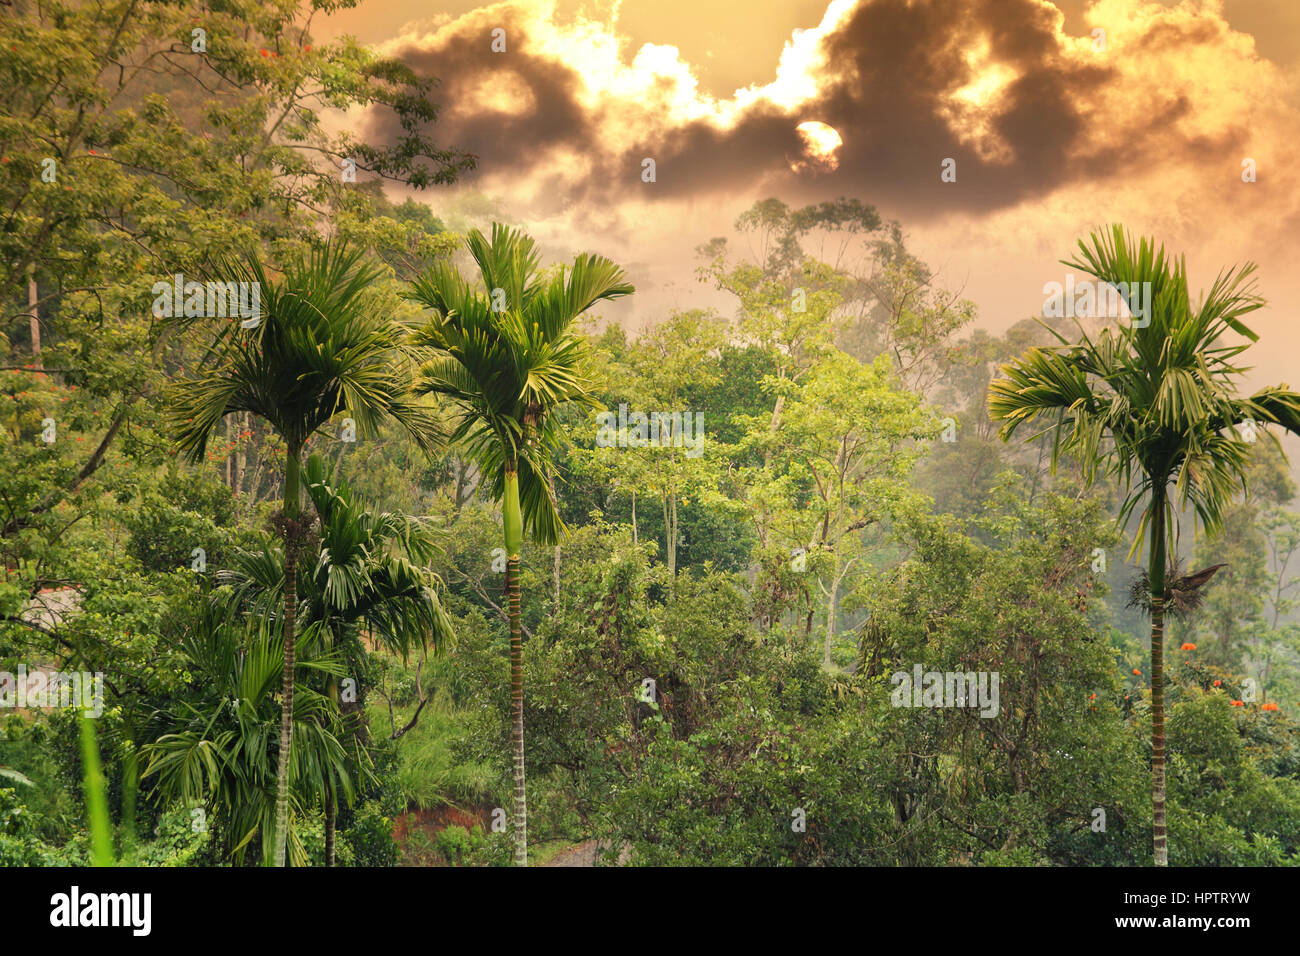 sunset in jungle - Stock Image